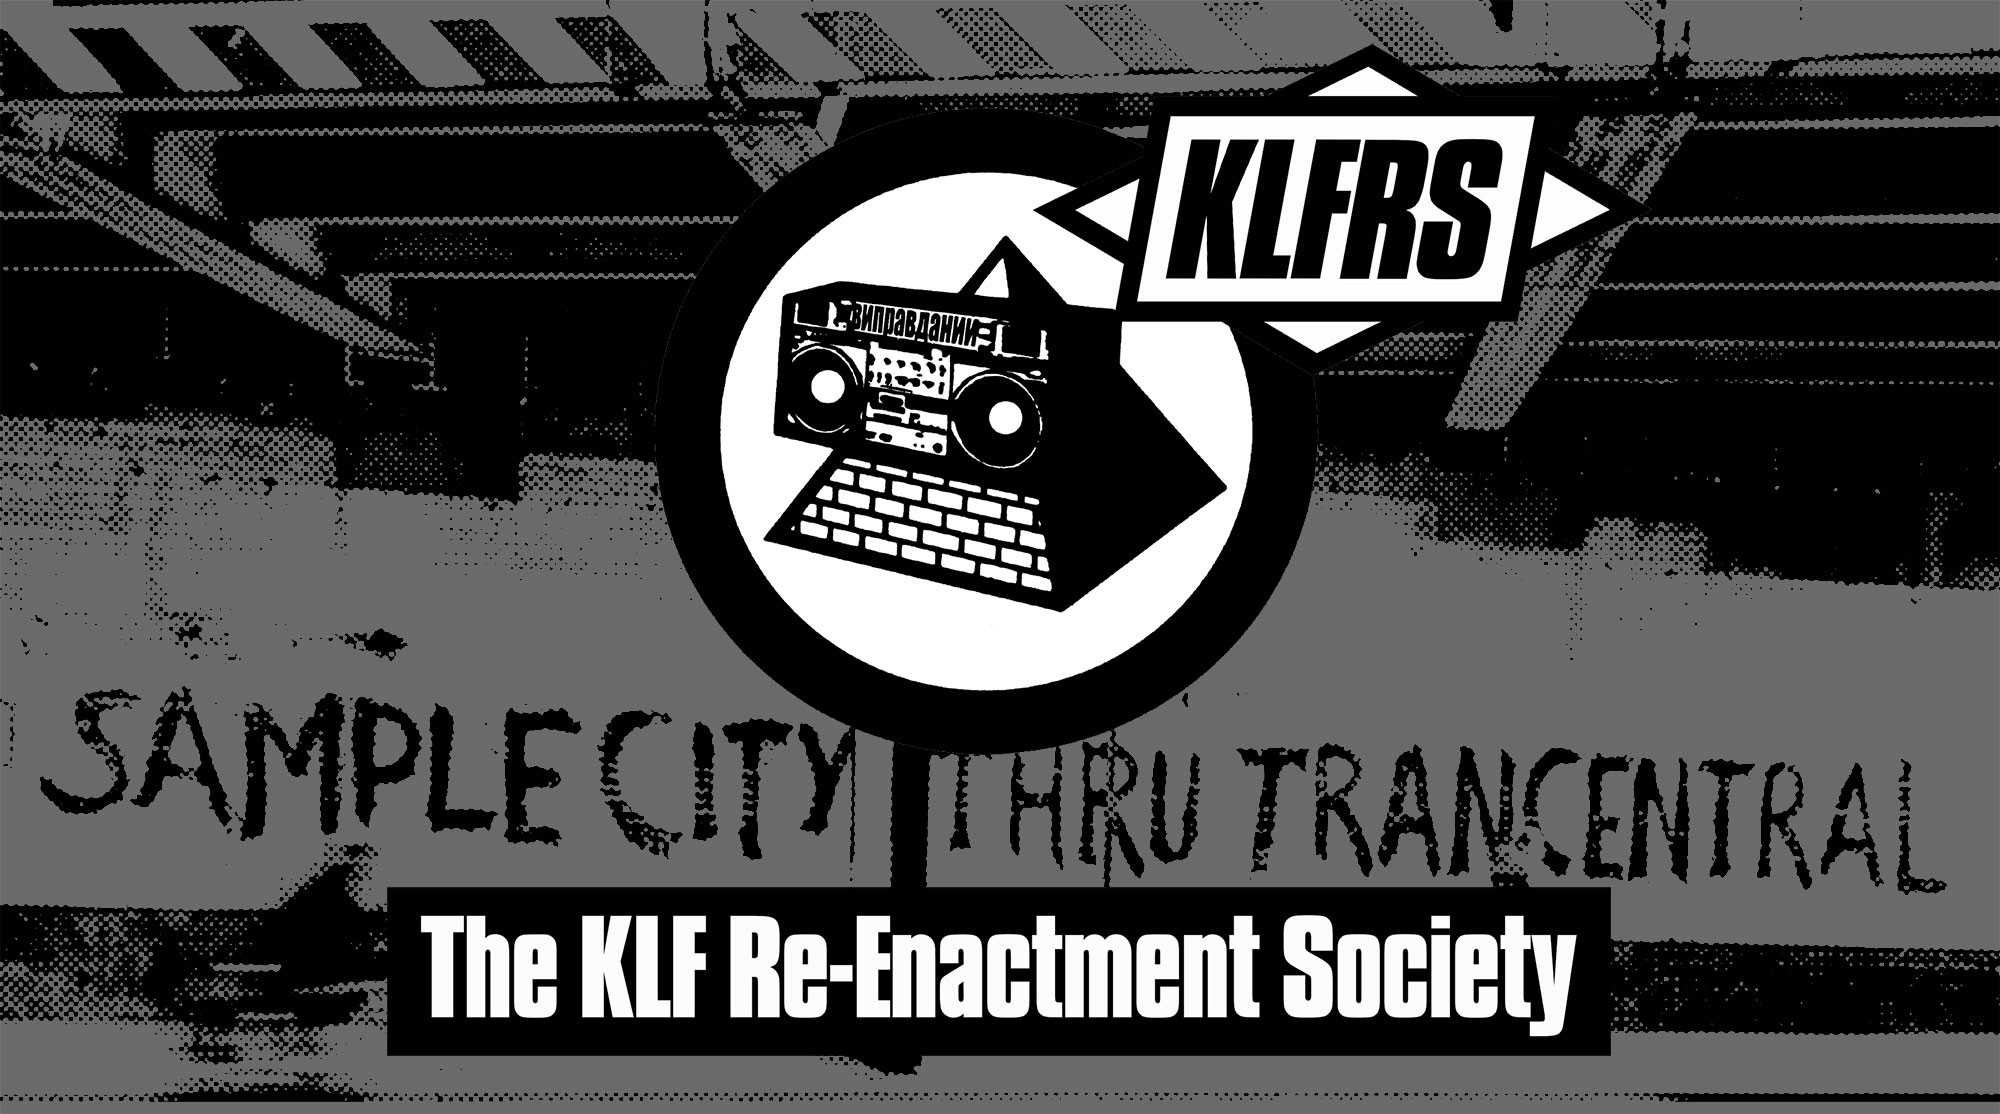 The KLF Re-enactment Society